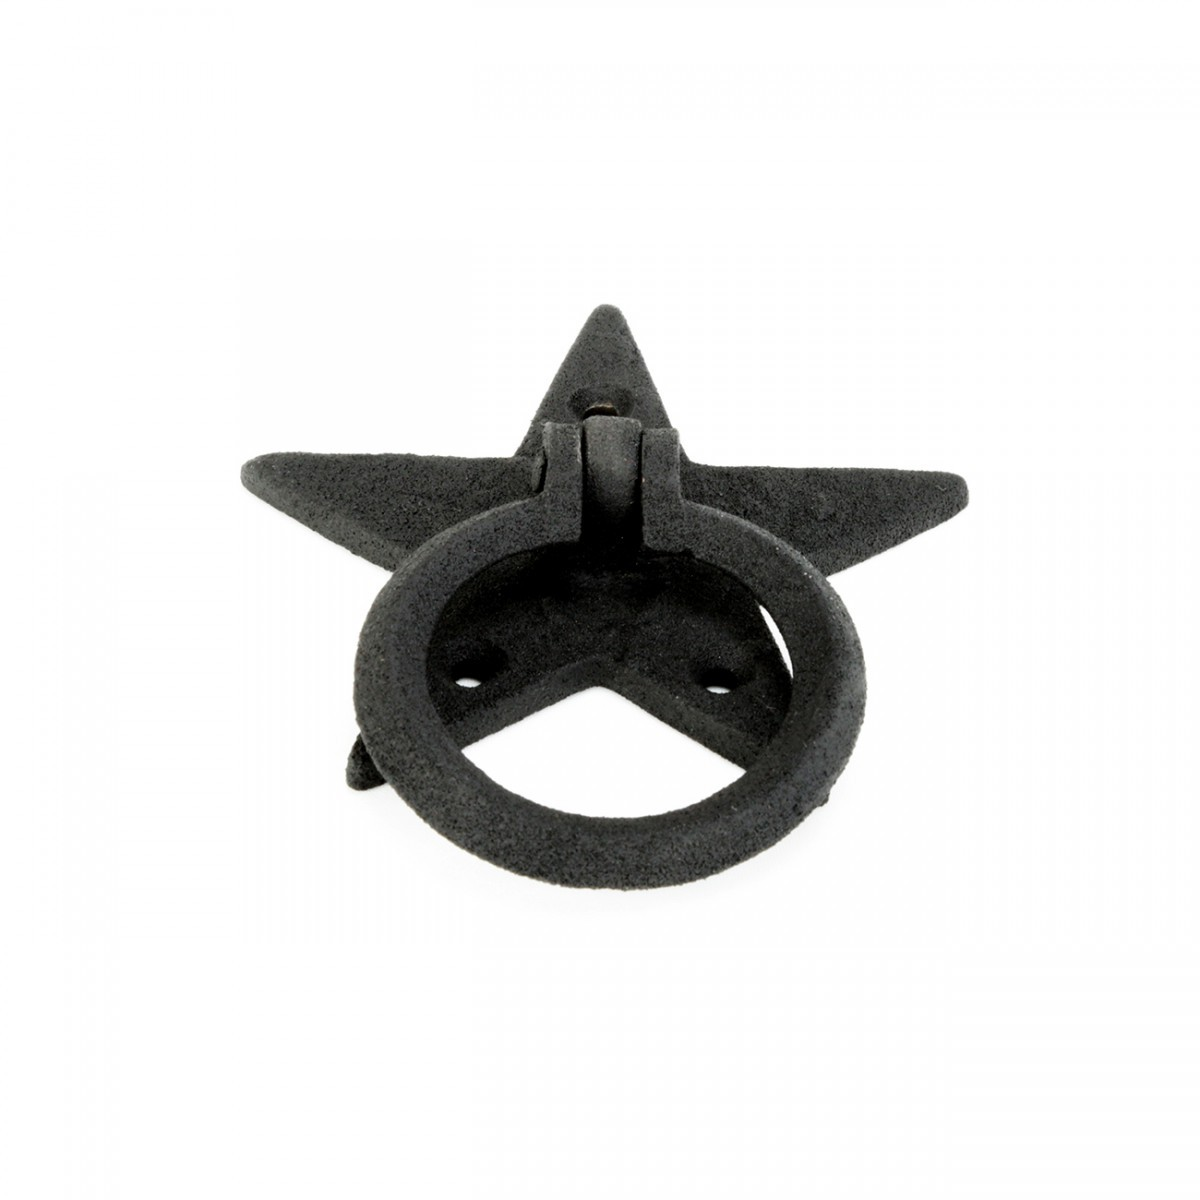 Cabinet Drawer Ring Pull Southern Star Design Pack of 10 Black Iron Star Cabinet Drawer Ring Pull